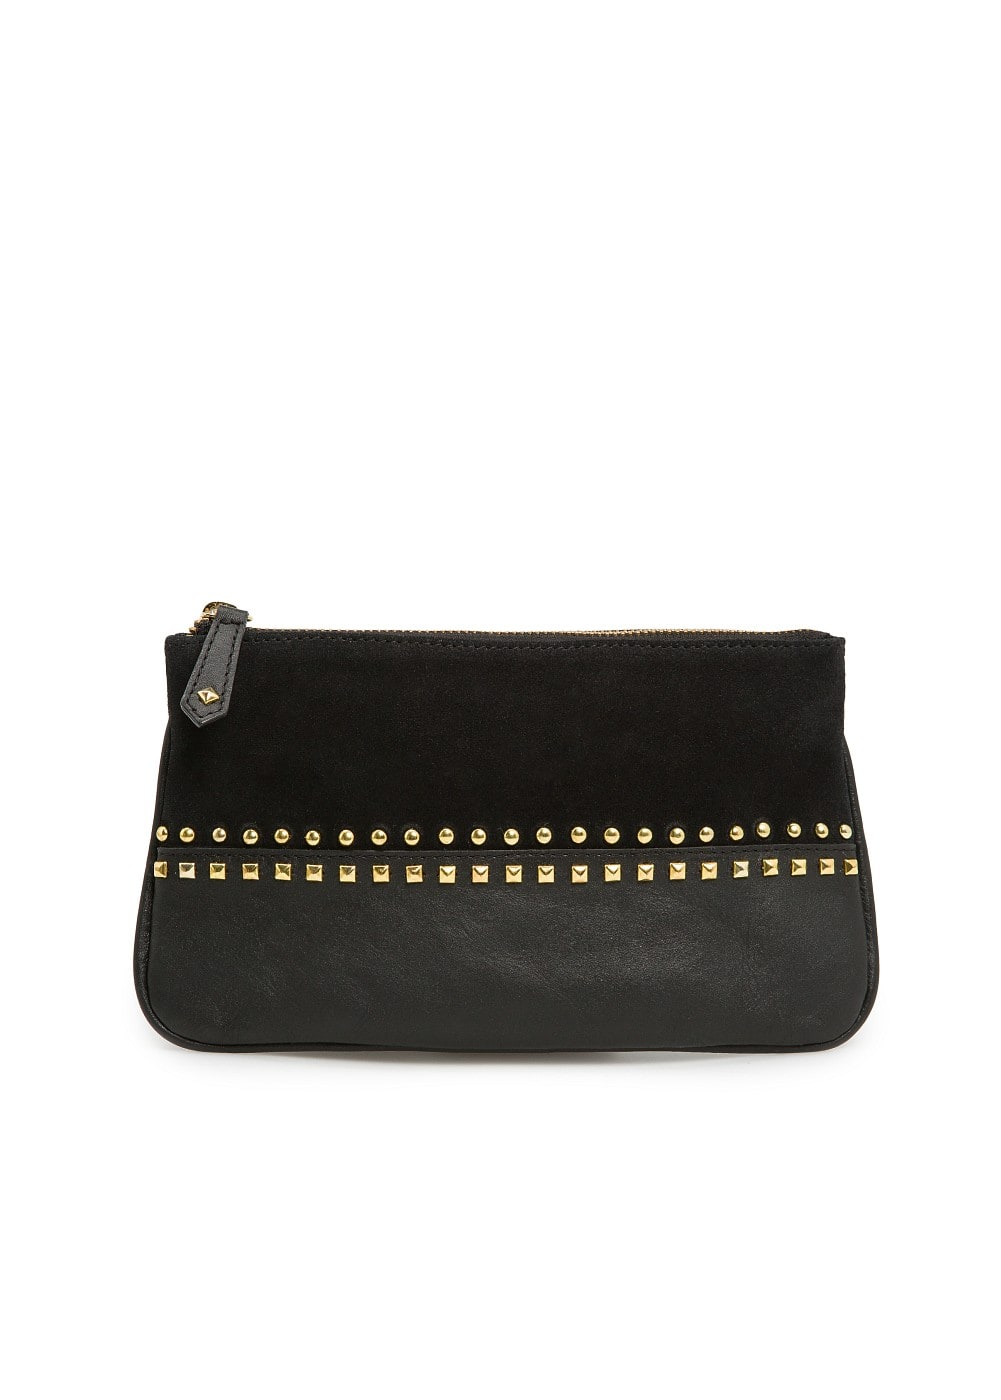 Studded leather cosmetic bag